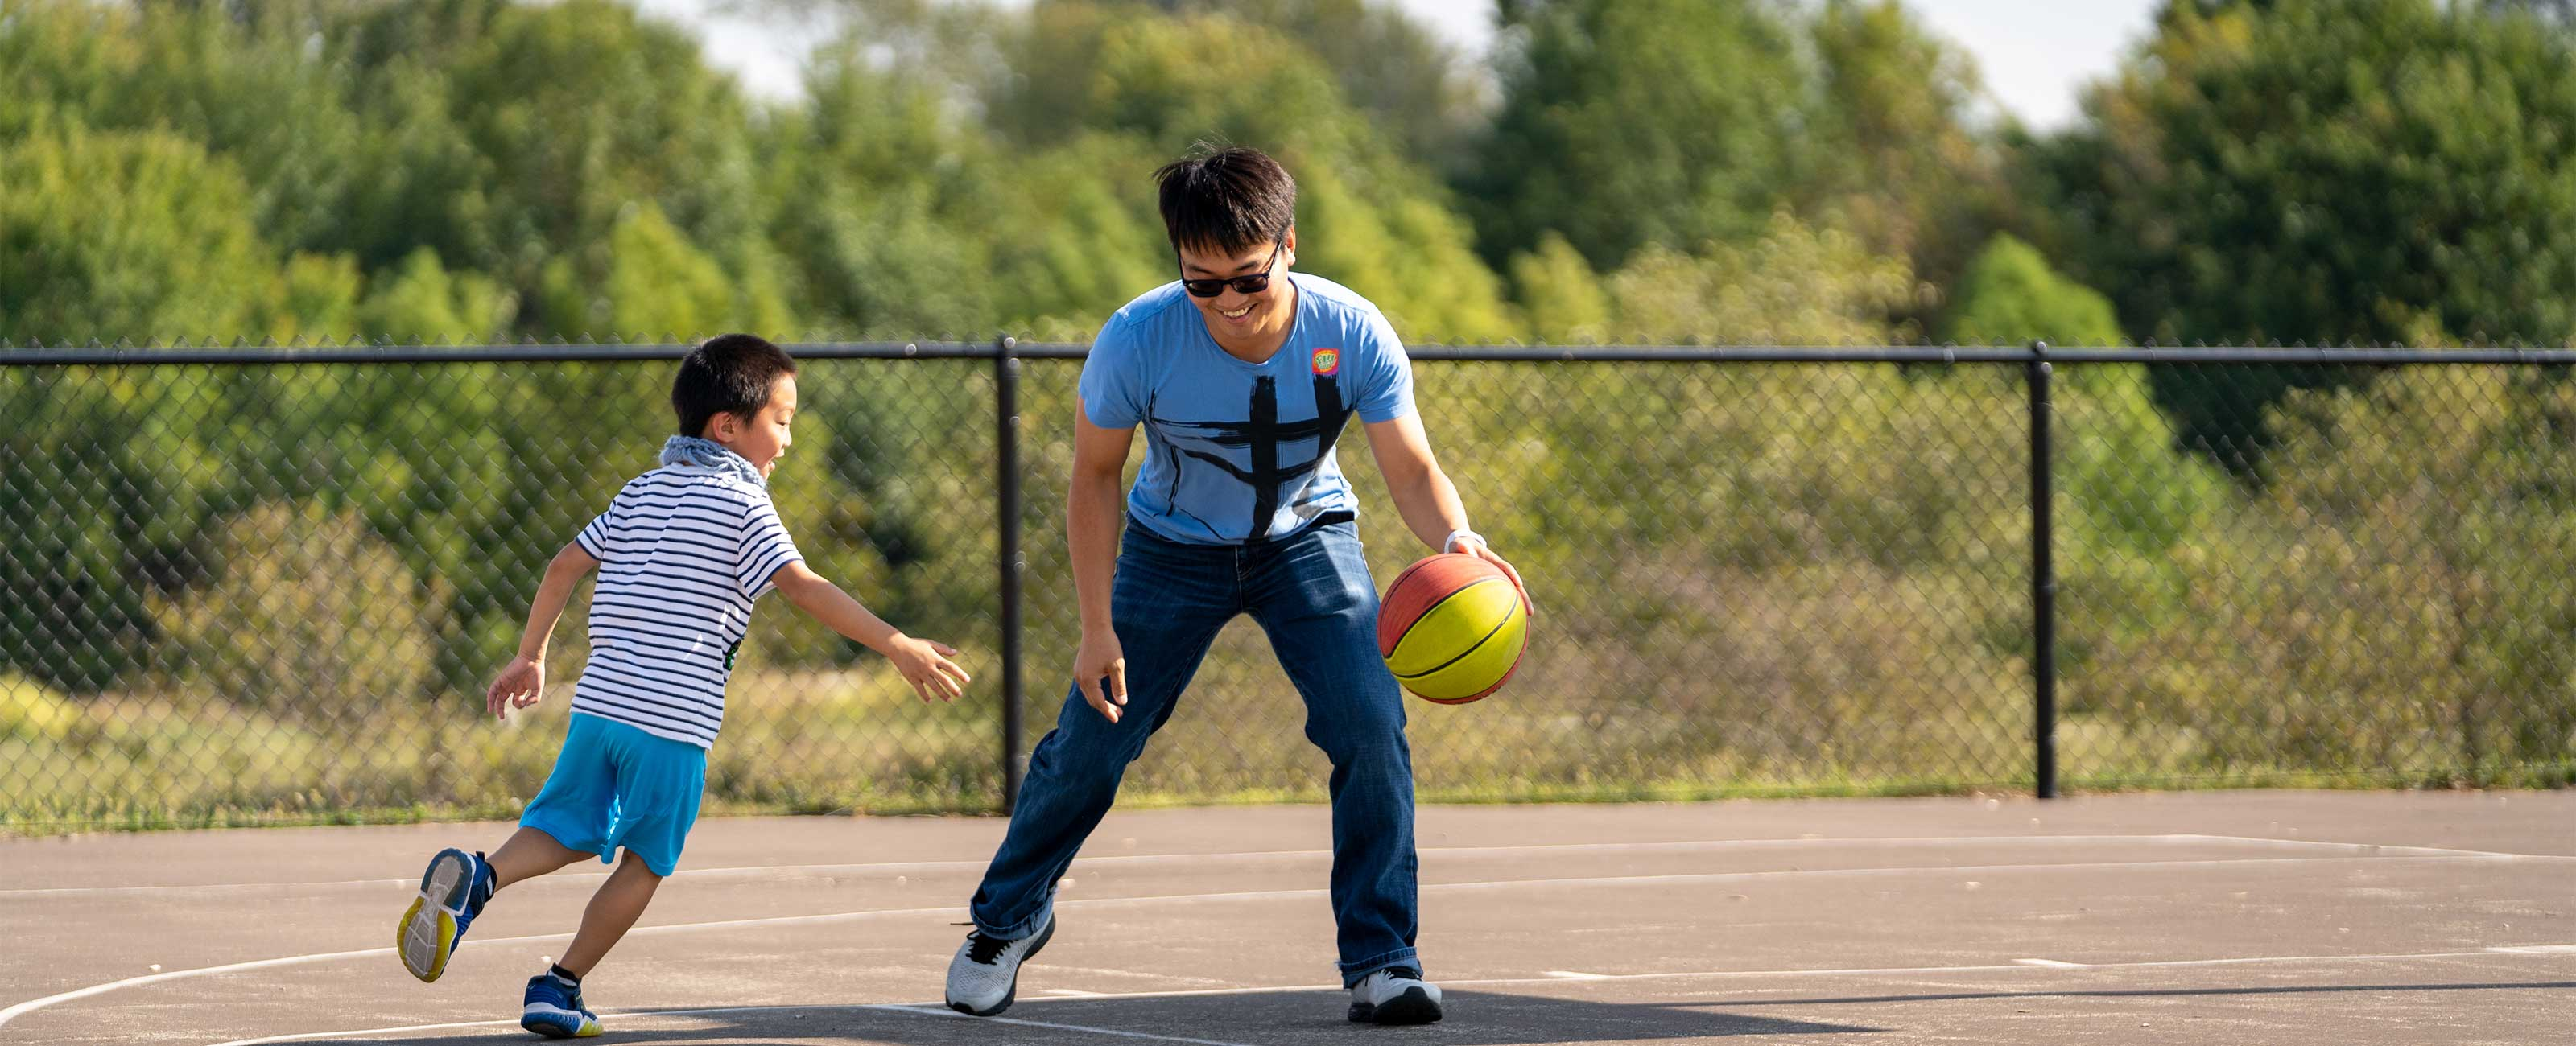 2x-embed-story-yuan-shi-playing-basketball-with-son-Photo-9